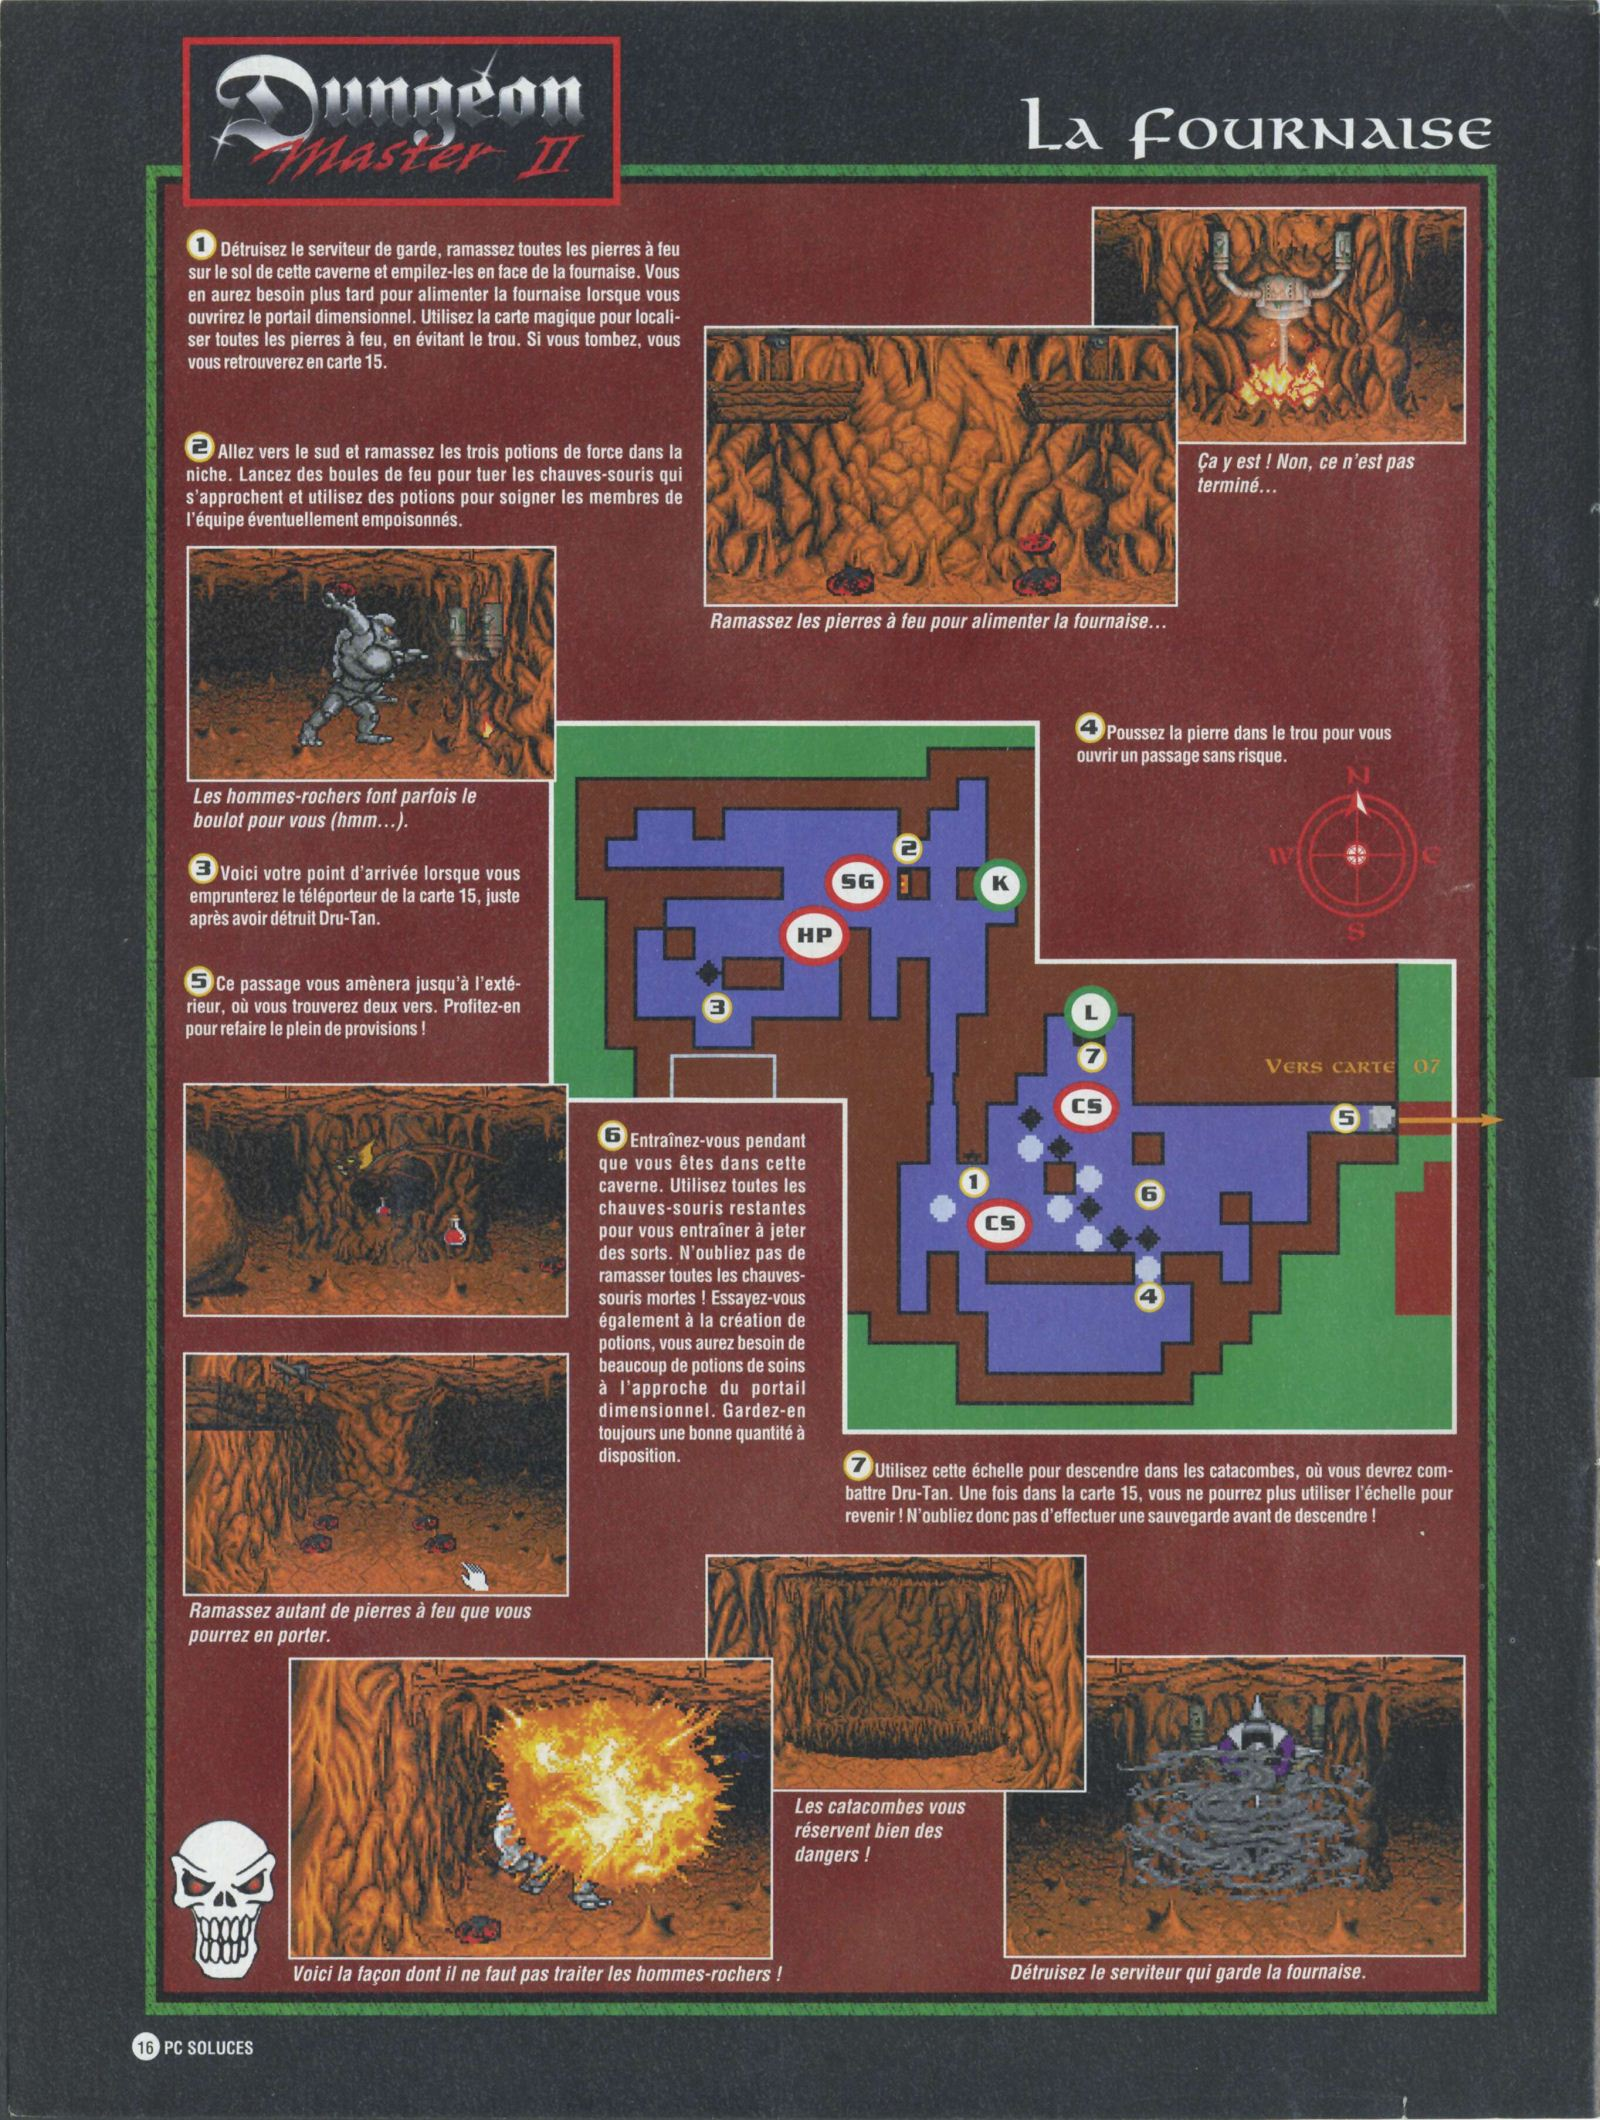 Dungeon Master II solution published in French magazine &amp;#039;PC Soluces&amp;#039;, Issue#1, February-March 1996, Page16